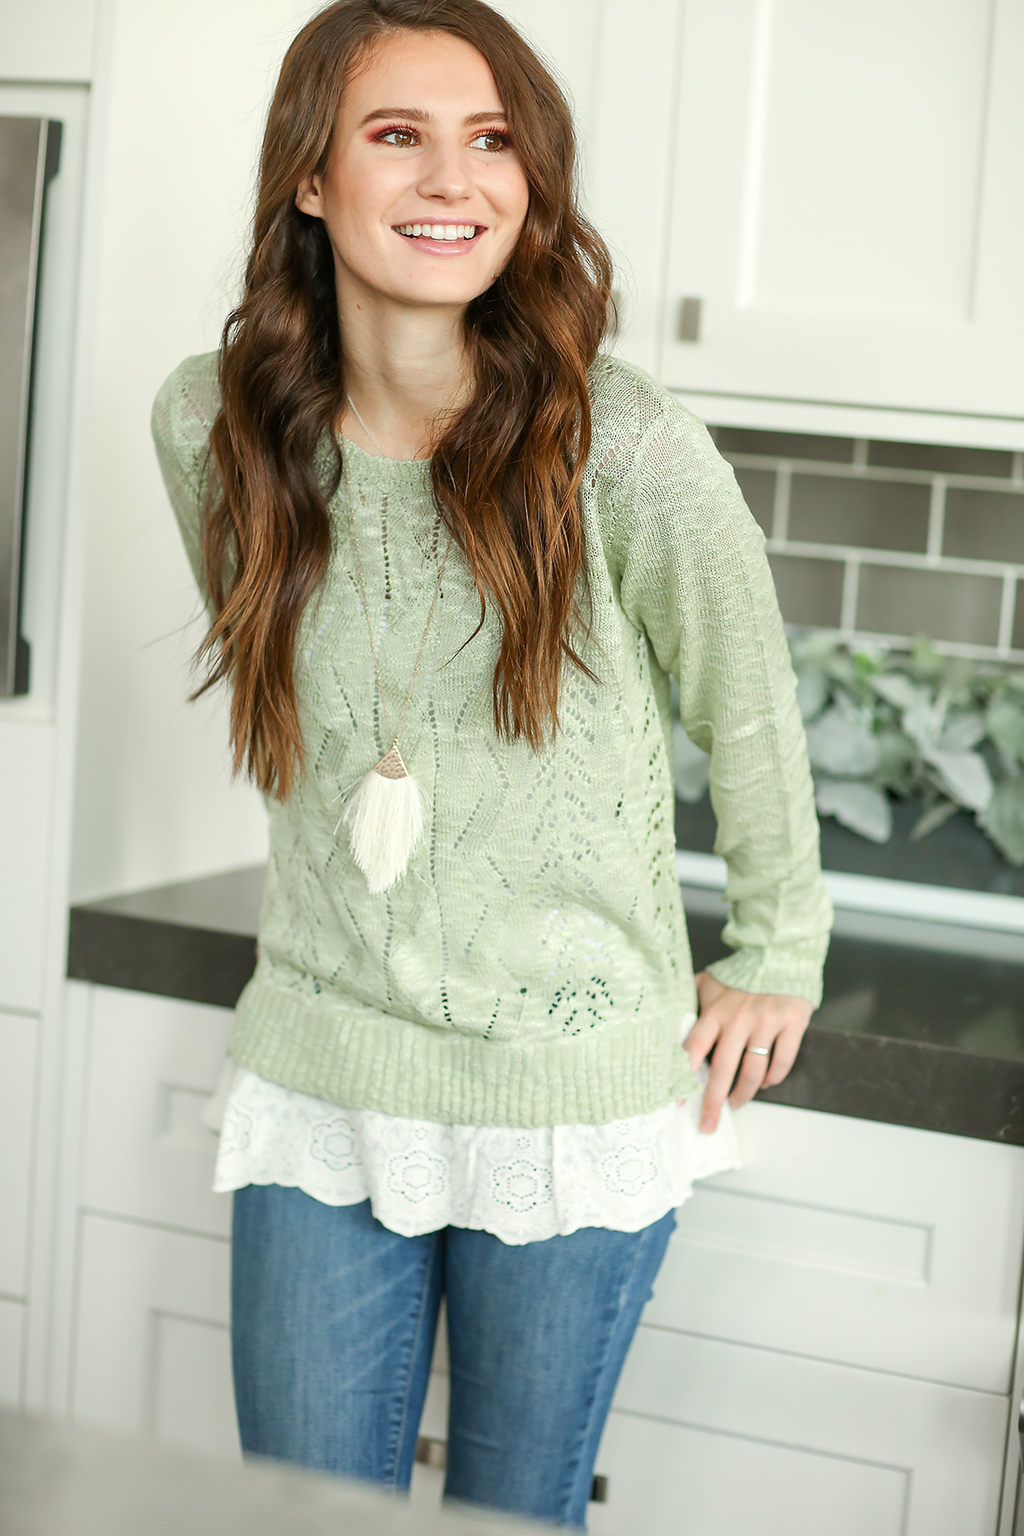 Sweater Weather Mint Sweater with Lace Detail